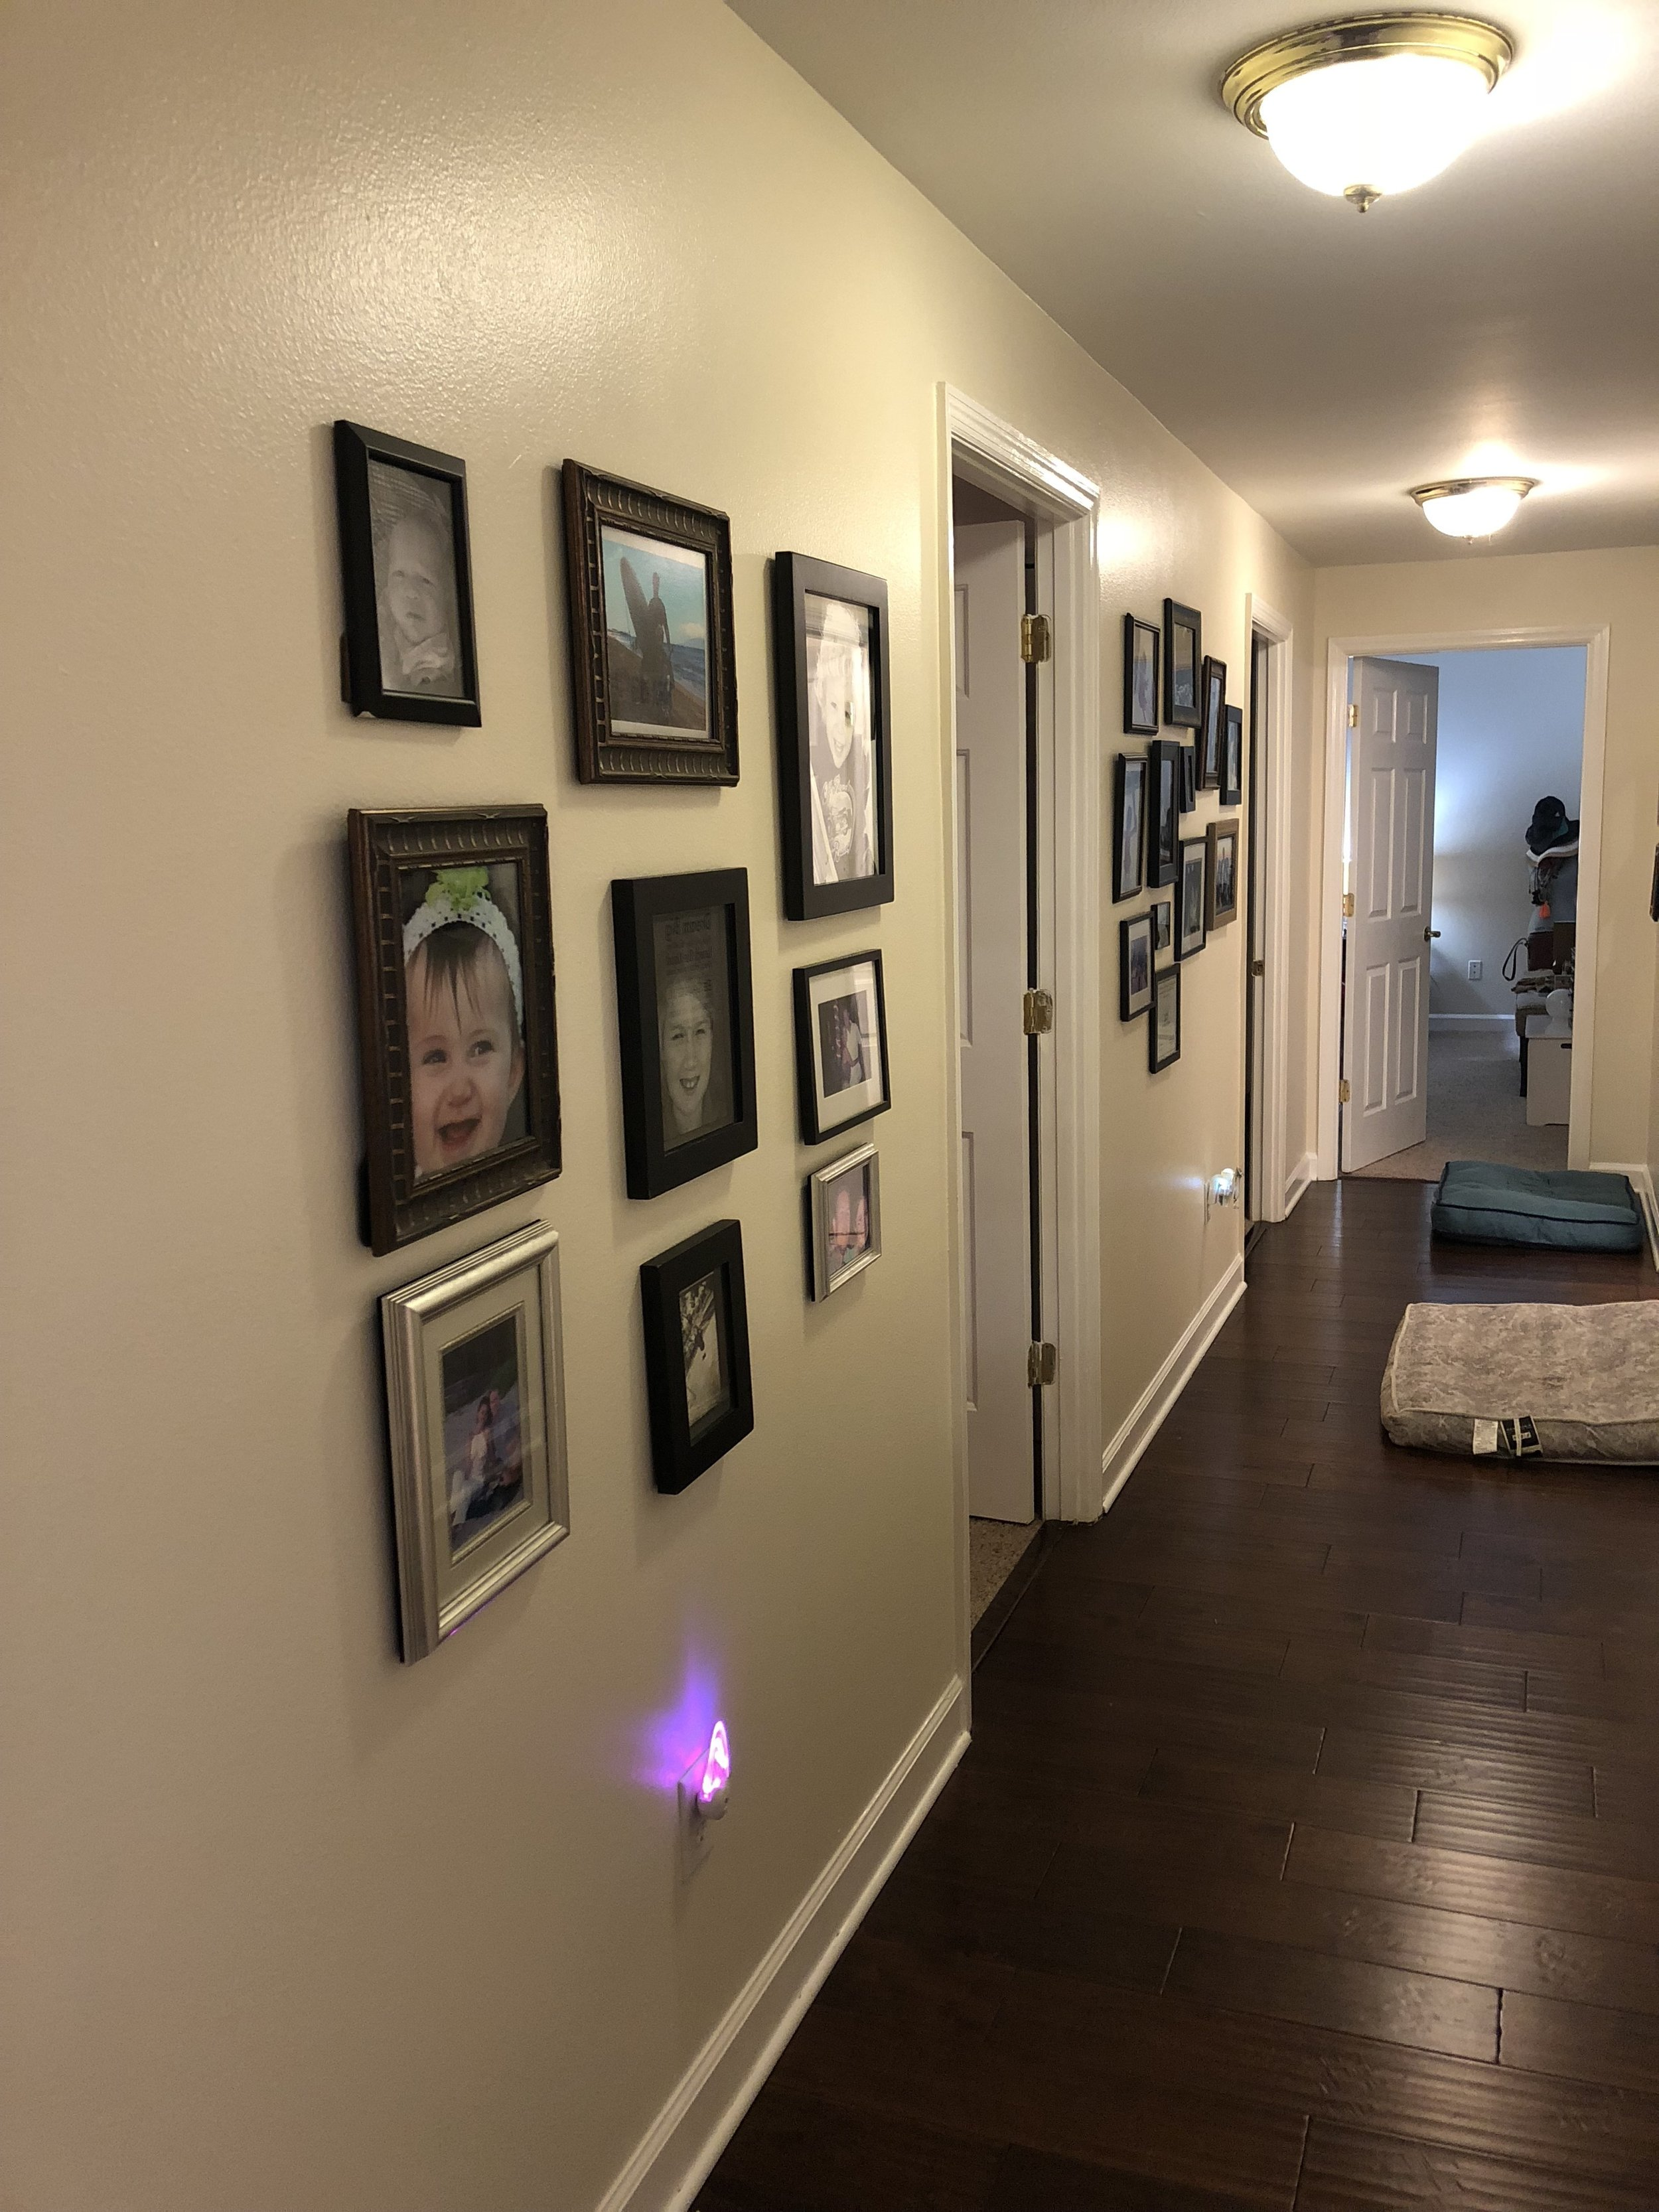 My kids insisted I put our family pictures up right away :)